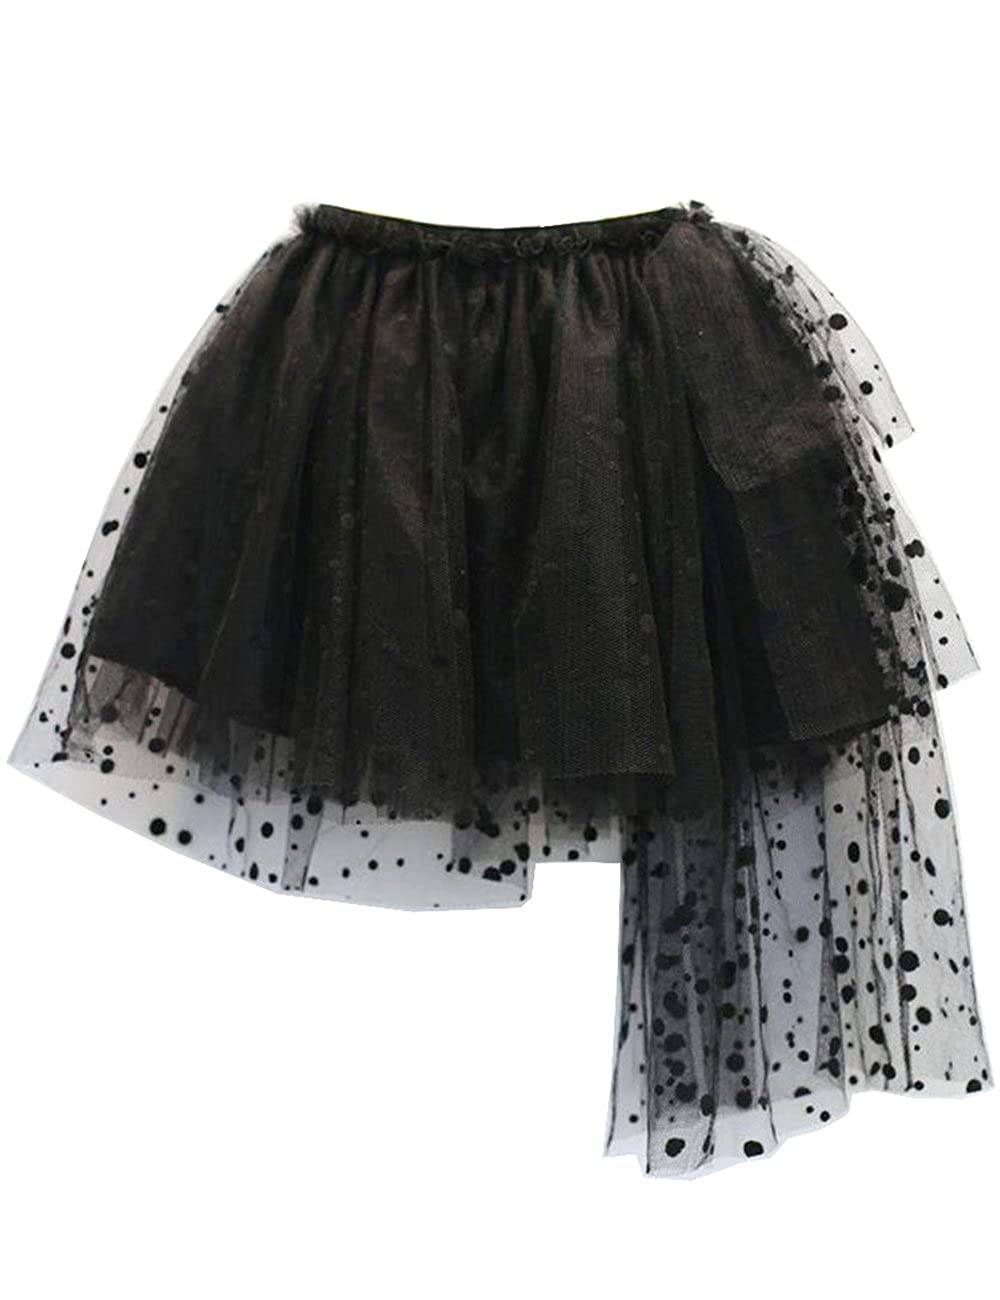 Baotaobabe Little Girls Tulle Dress up Party Black Tutu Skirts